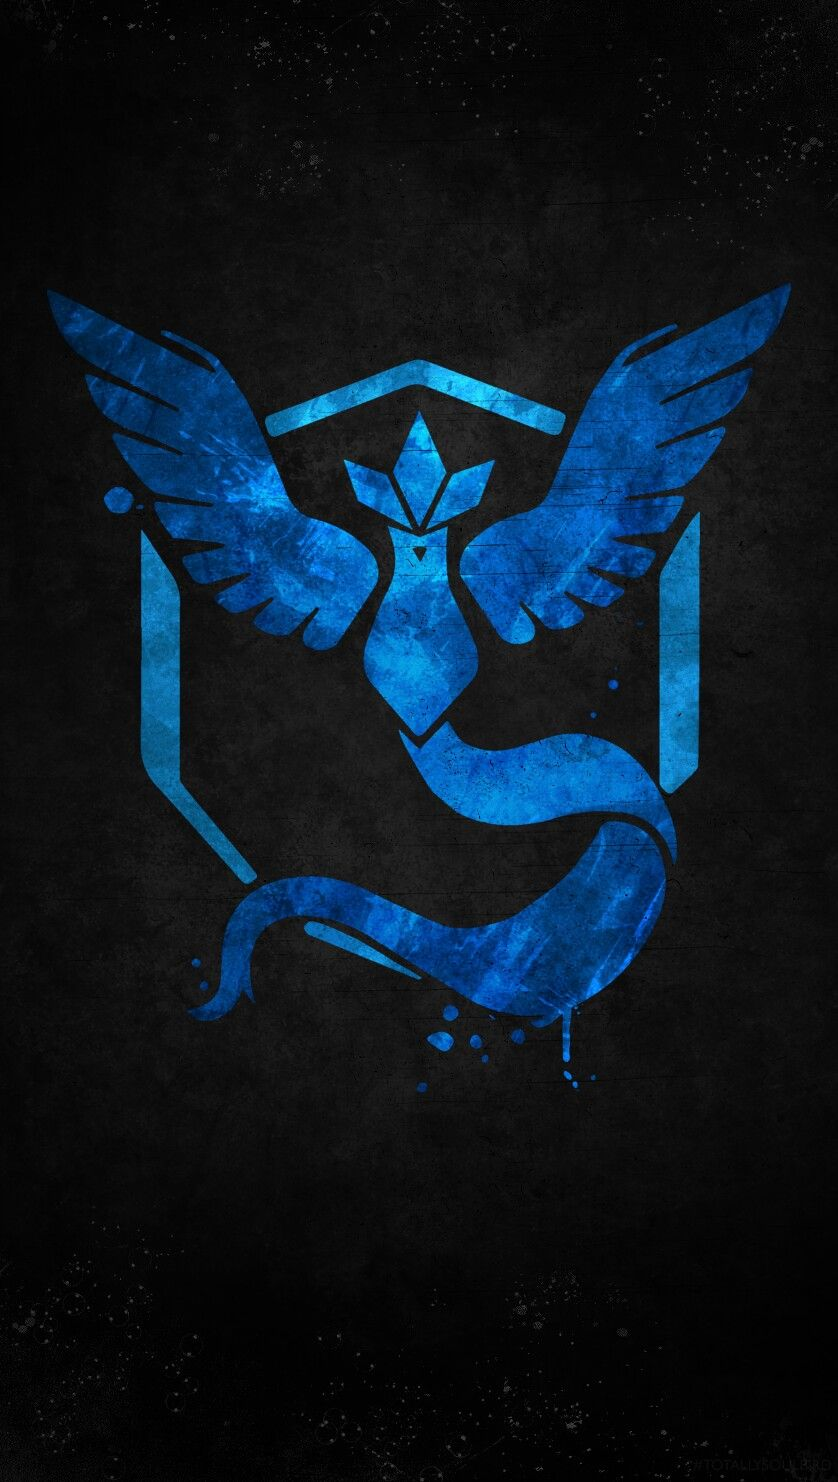 Team Mystic Phone Wallpaper Mystic Wallpaper Phone Wallpaper